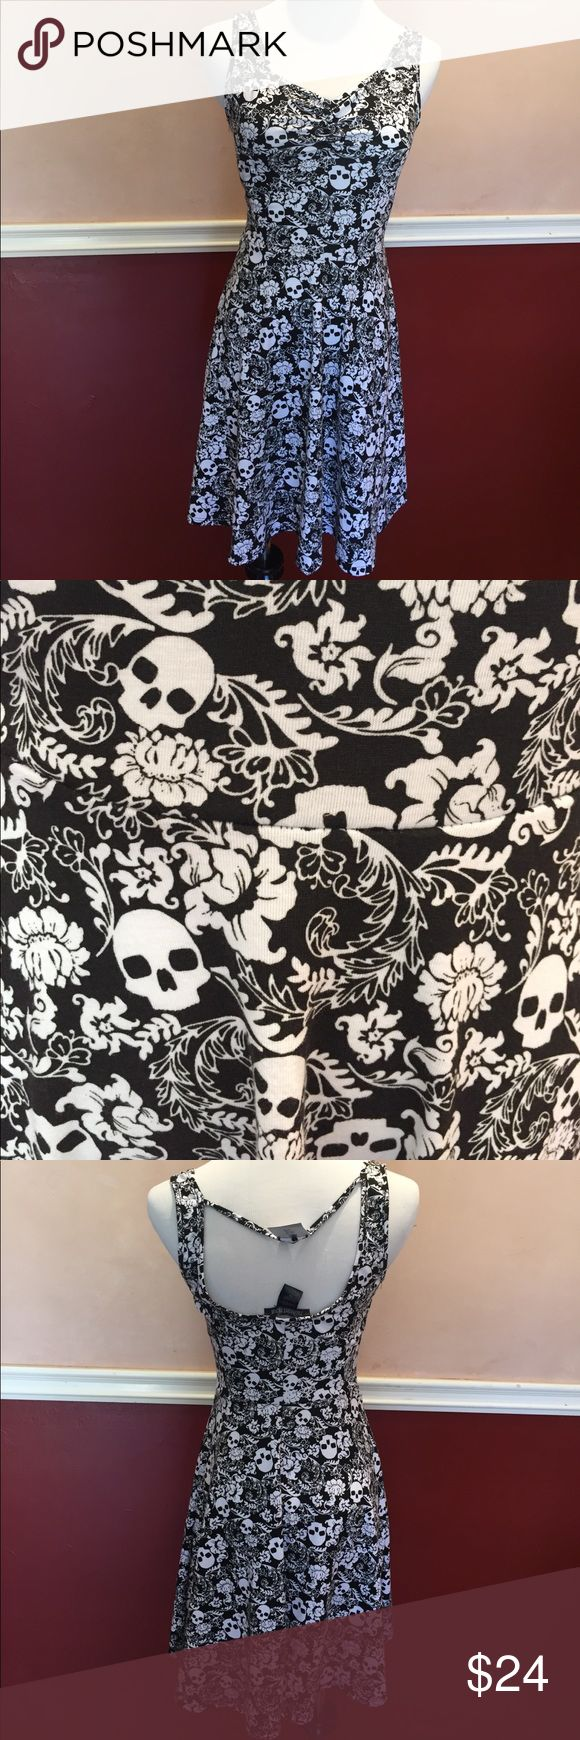 "NWT Hot Topic Midnight Hour Goth Skull Sundress XS NO TRADES OR LOWBALLERS, please. From Hot Topic, the brand is Midnight Hour. Size XS, new with tags. Measurements are 32"" bust, 26"" waist, 39"" hips. 34"" total length. Goths in hot weather! Hot Topic Dresses Mini"